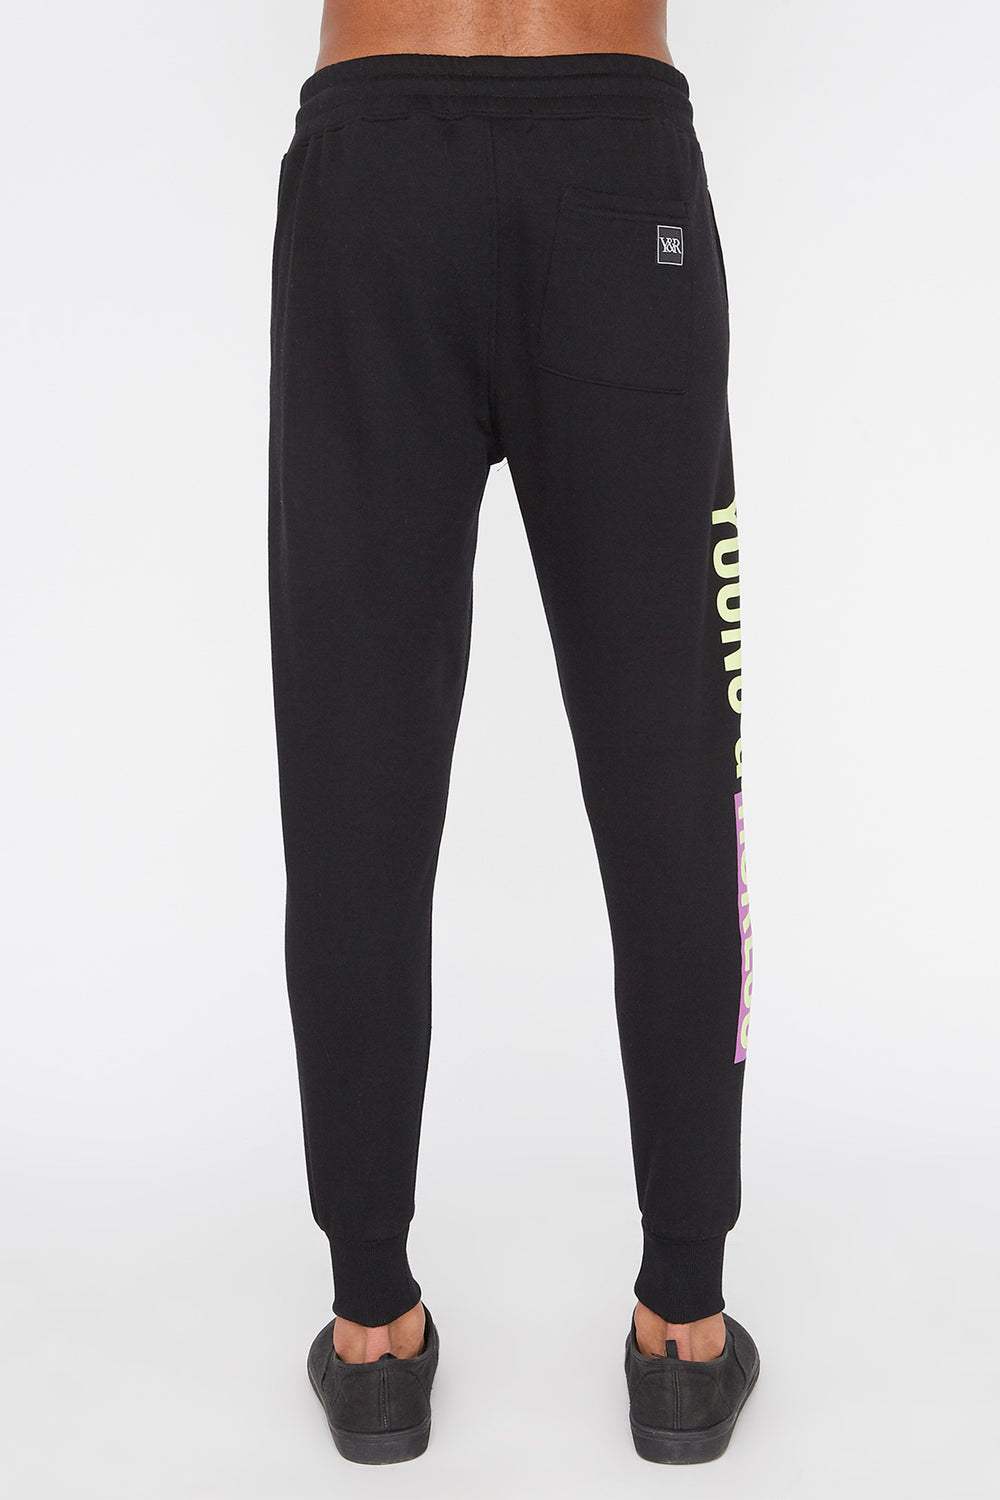 Jogger Logo Retro Young & Reckless Homme Noir